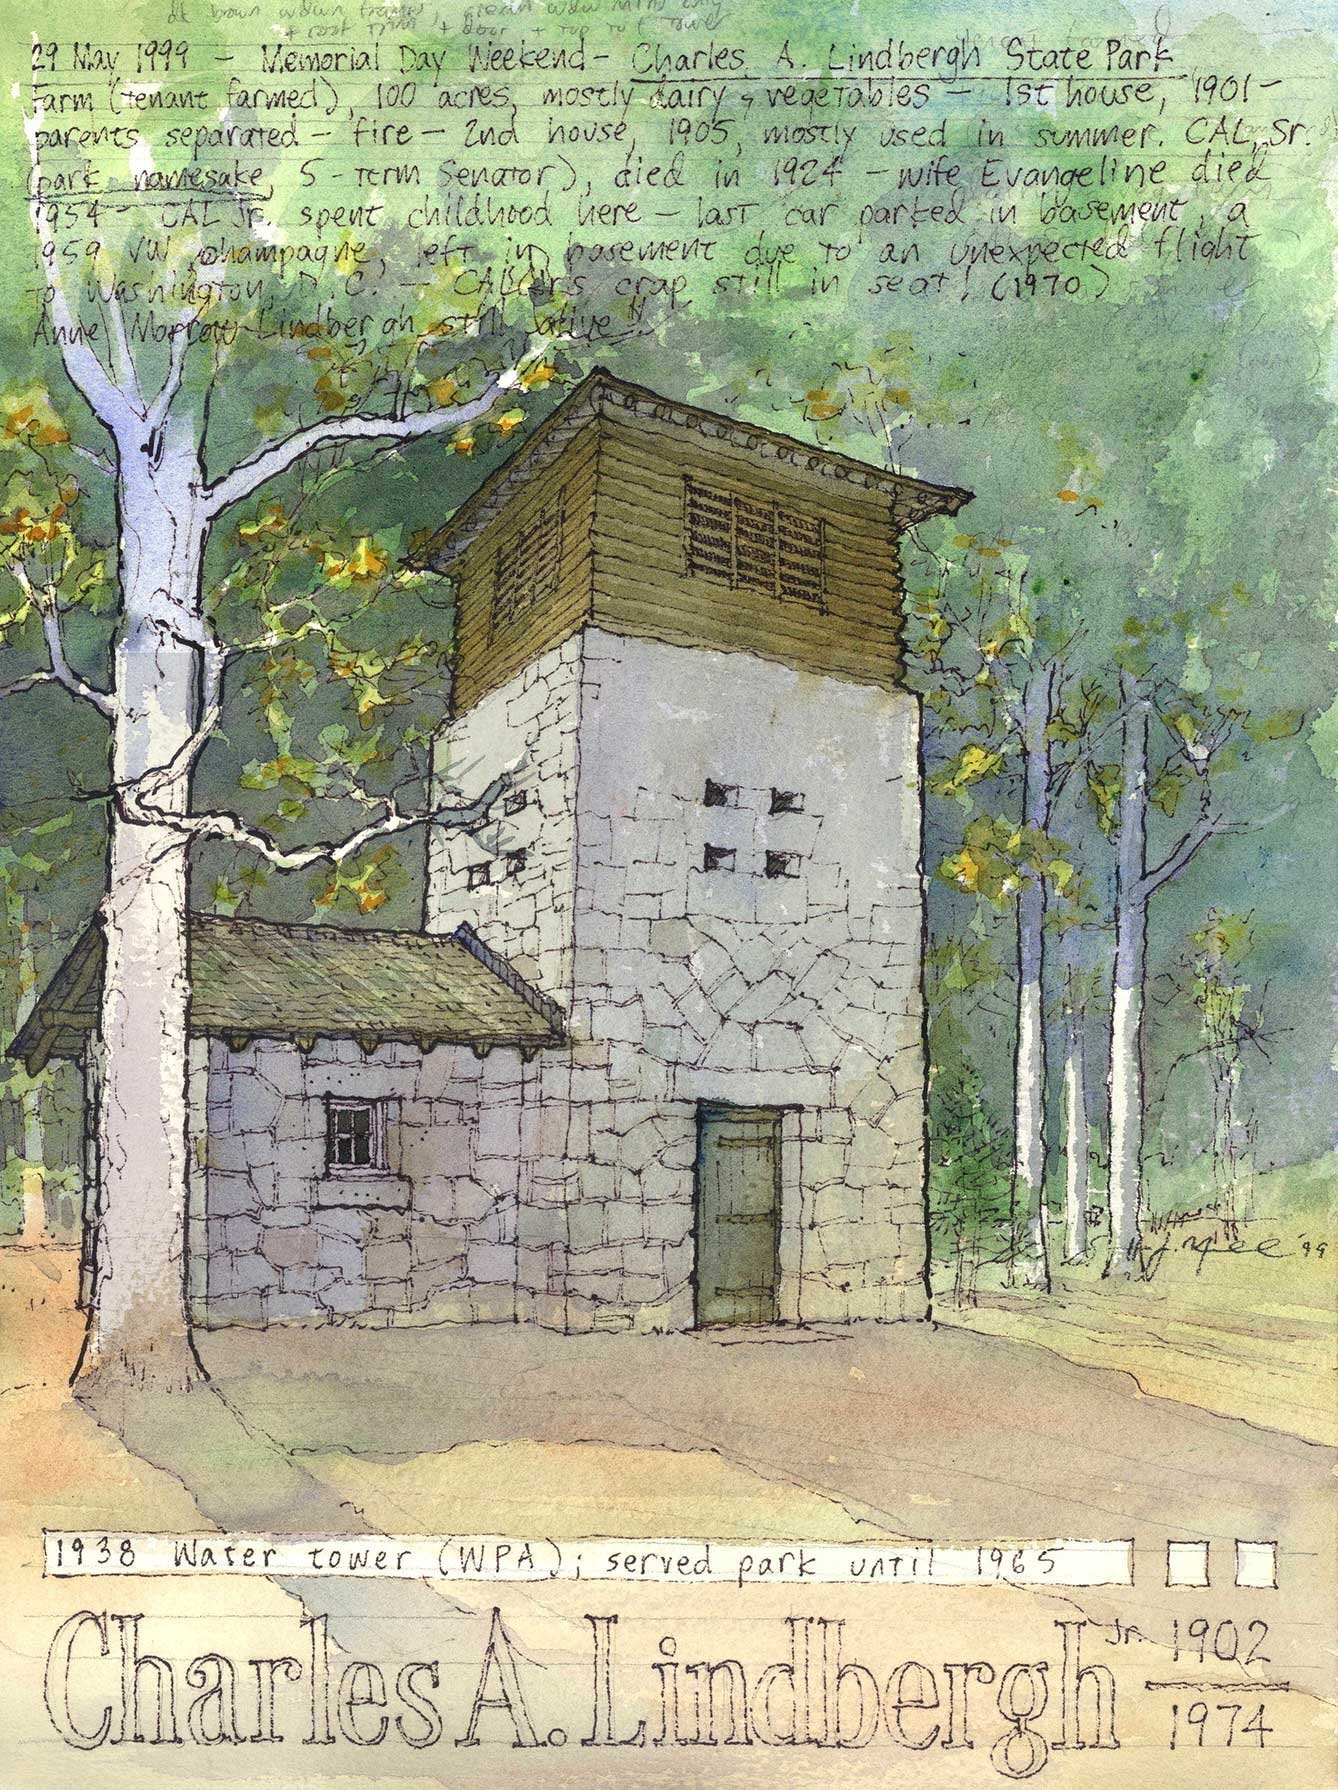 Charles A. Lindberg State Park water tower, Little Falls, Minnesota.  Pen and watercolor.